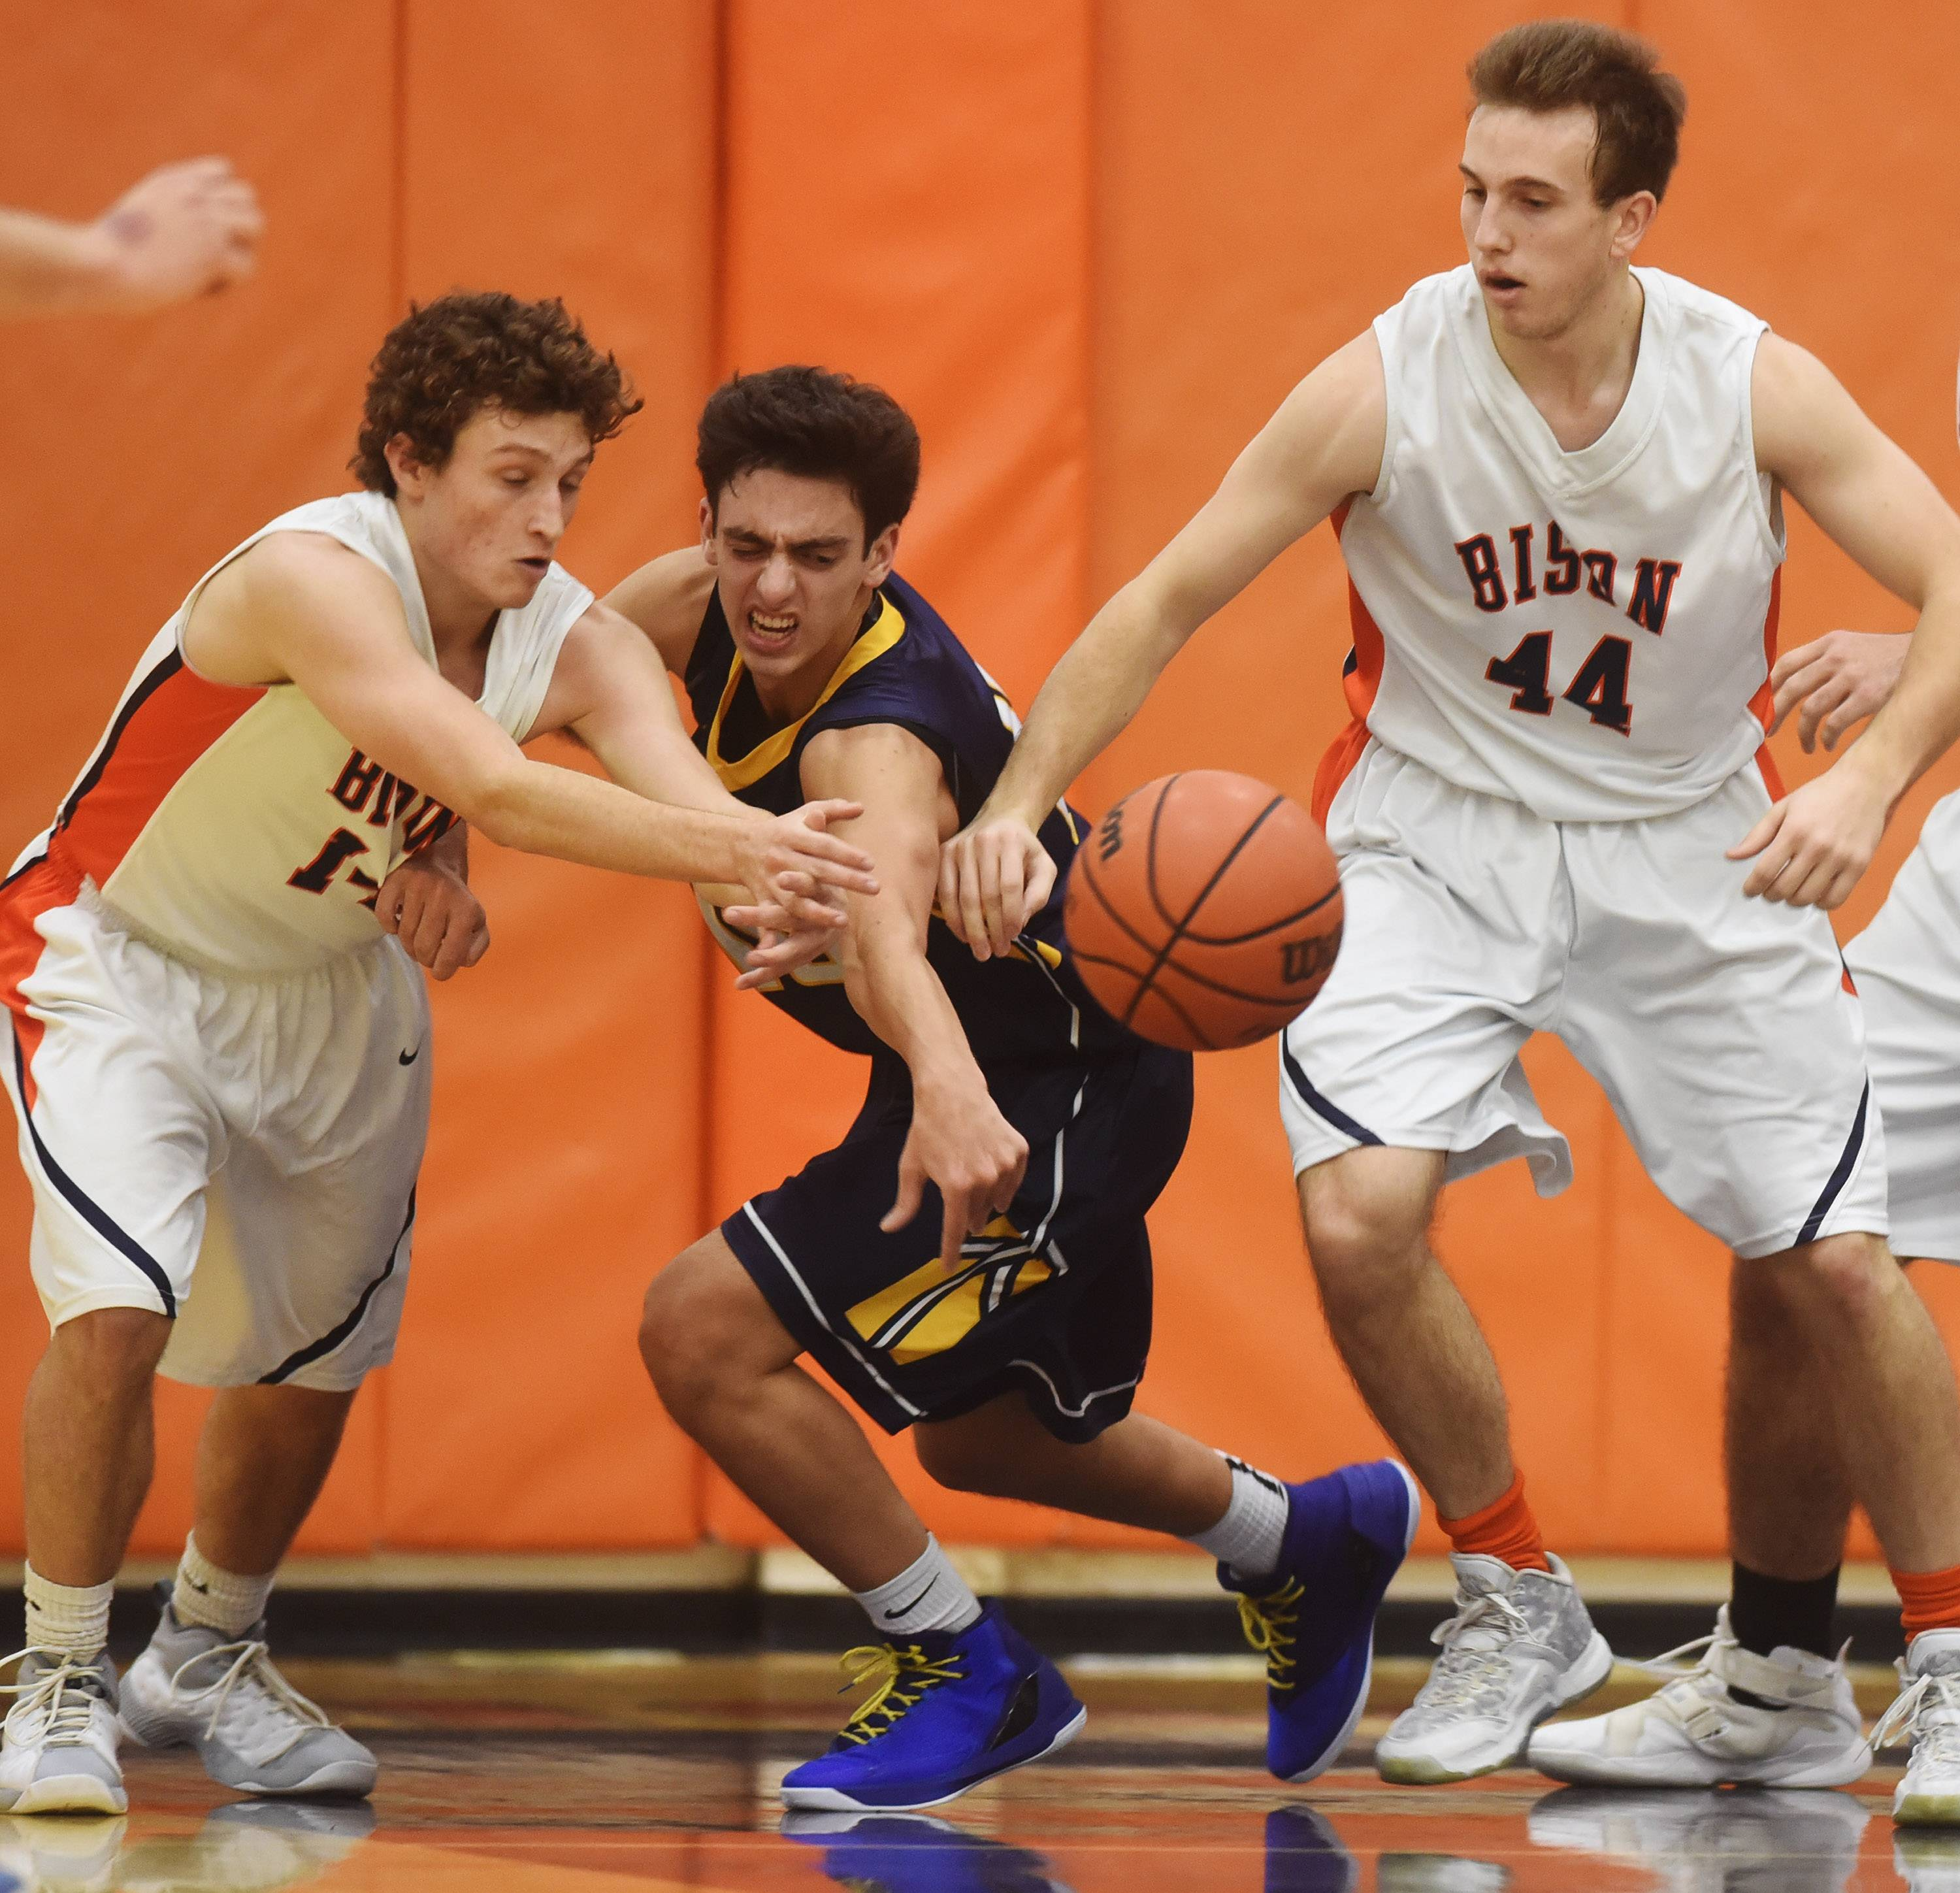 Buffalo Grove's Kyle Adams, left, and Jack Vaselaney, here bracketing Glenbrook South's George Arvanistis during tourney play at BG last year, are among the reasons the Bison have high hopes for this season.